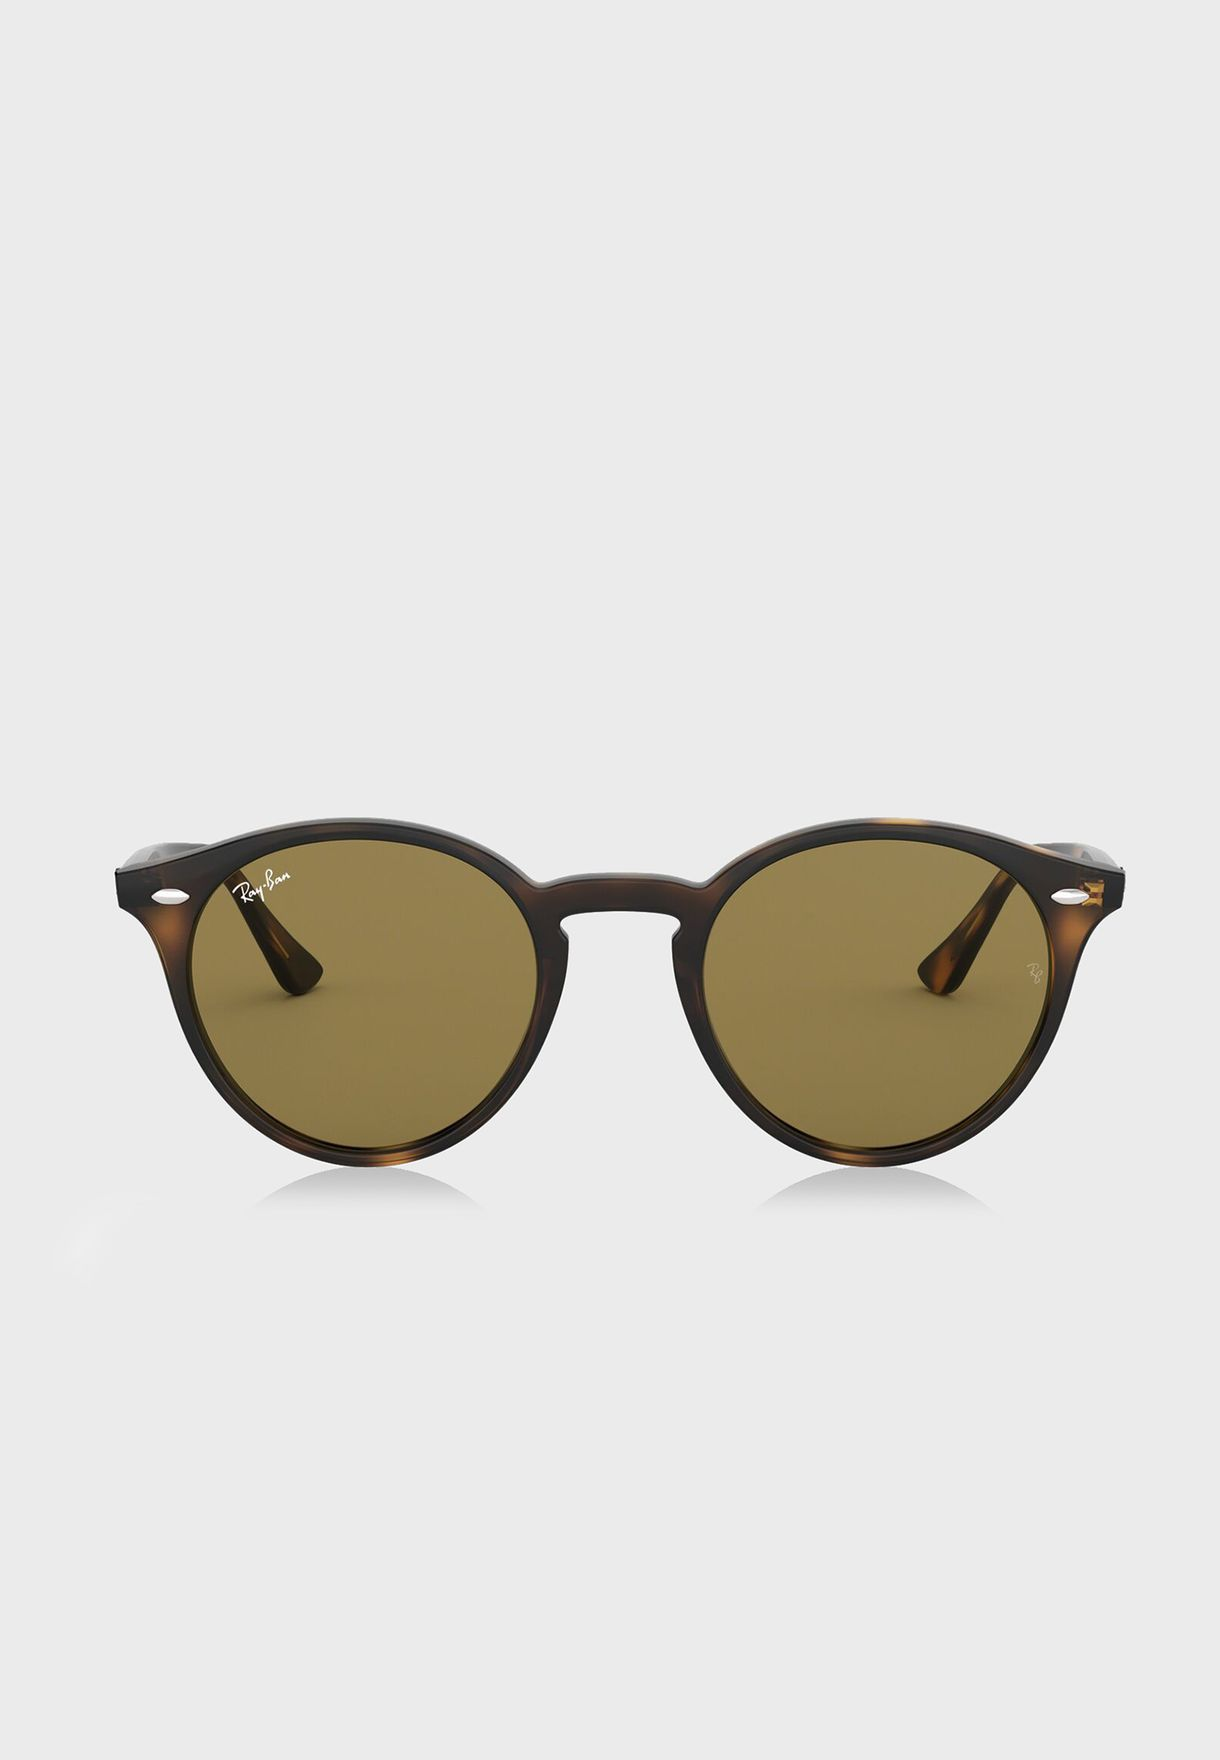 RB2180 Highstreet Round Sunglasses